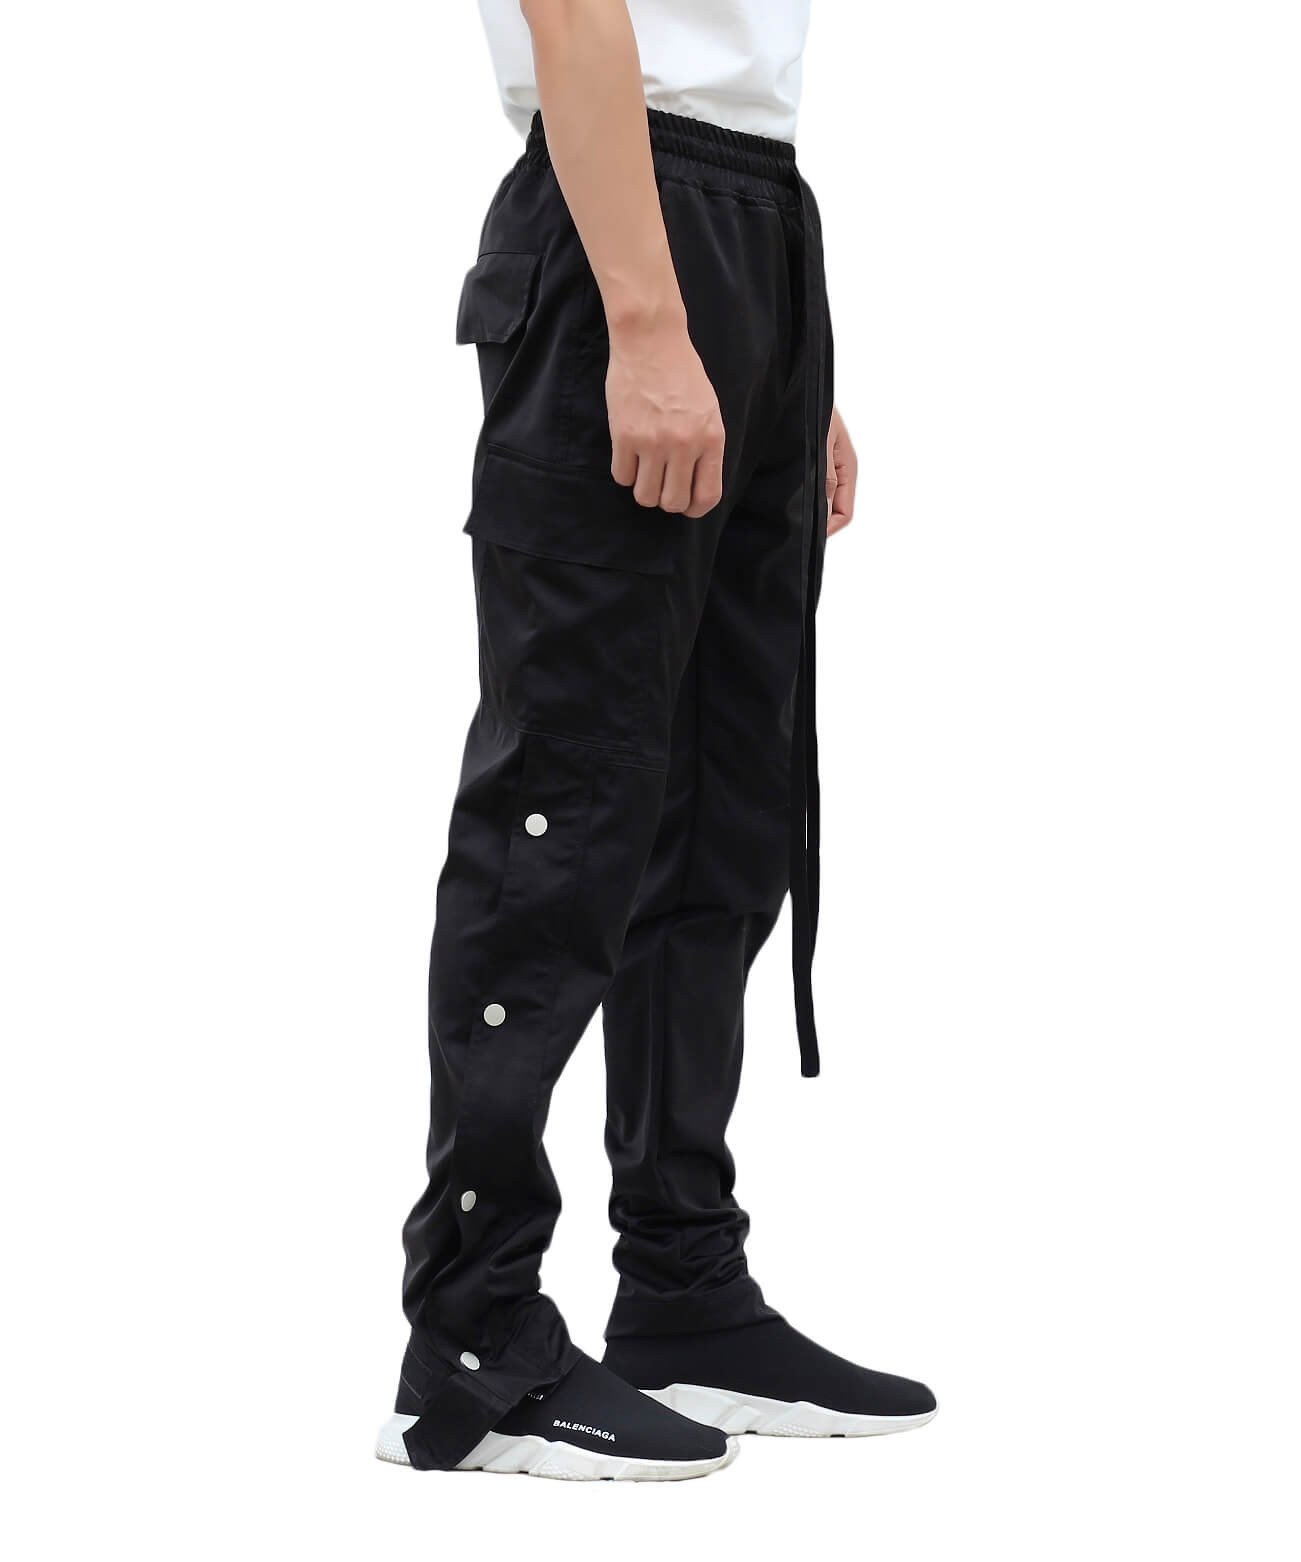 Nylon Snap Cargo Pants - Black